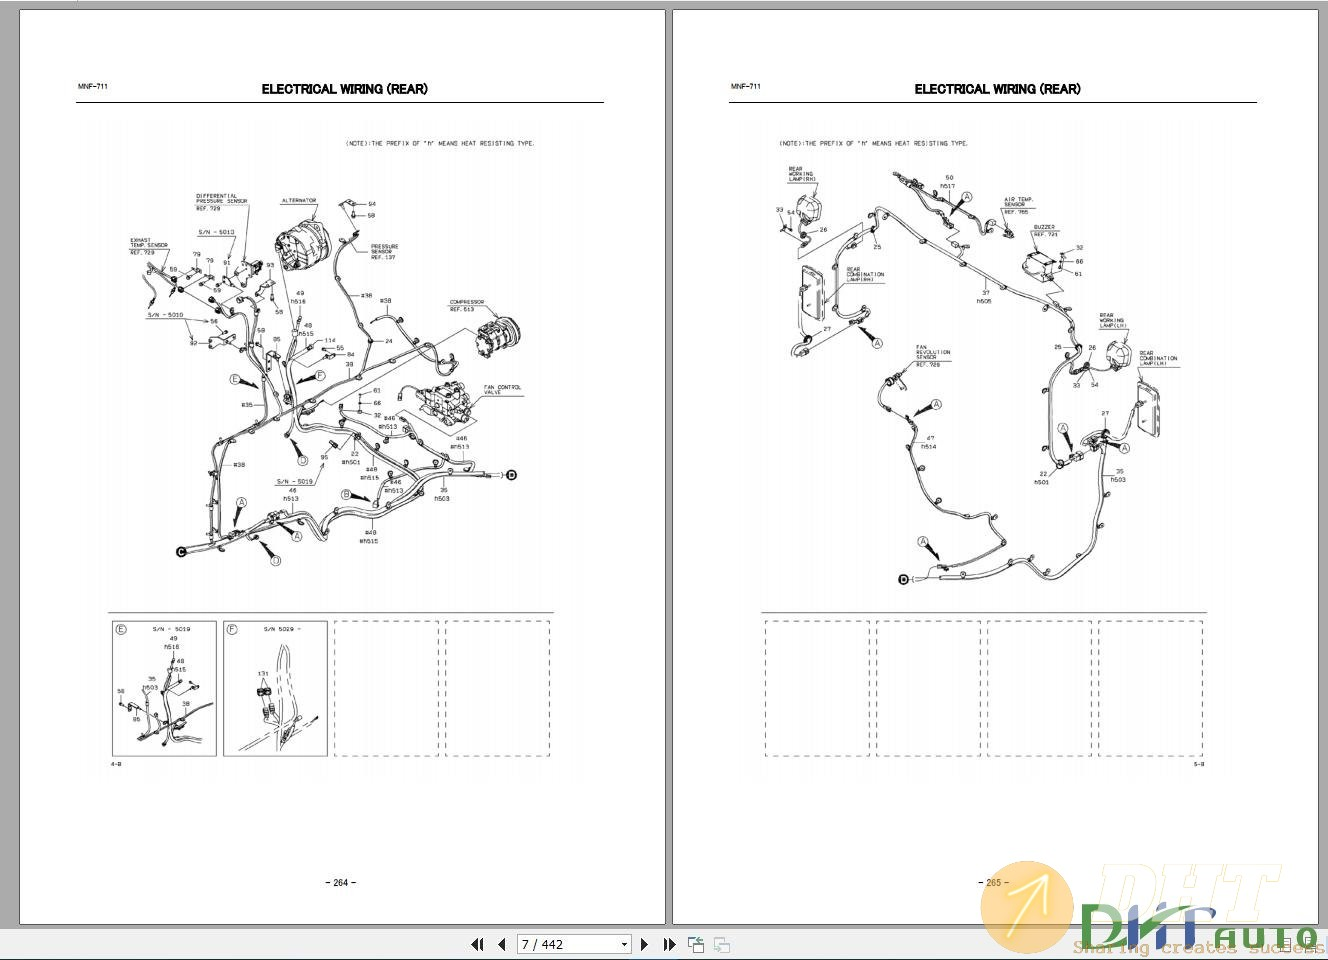 Kawasaki-Wheel-Loader-Workshop-Manual-Part-Manual-Full-Set-Update-2020-5.jpg